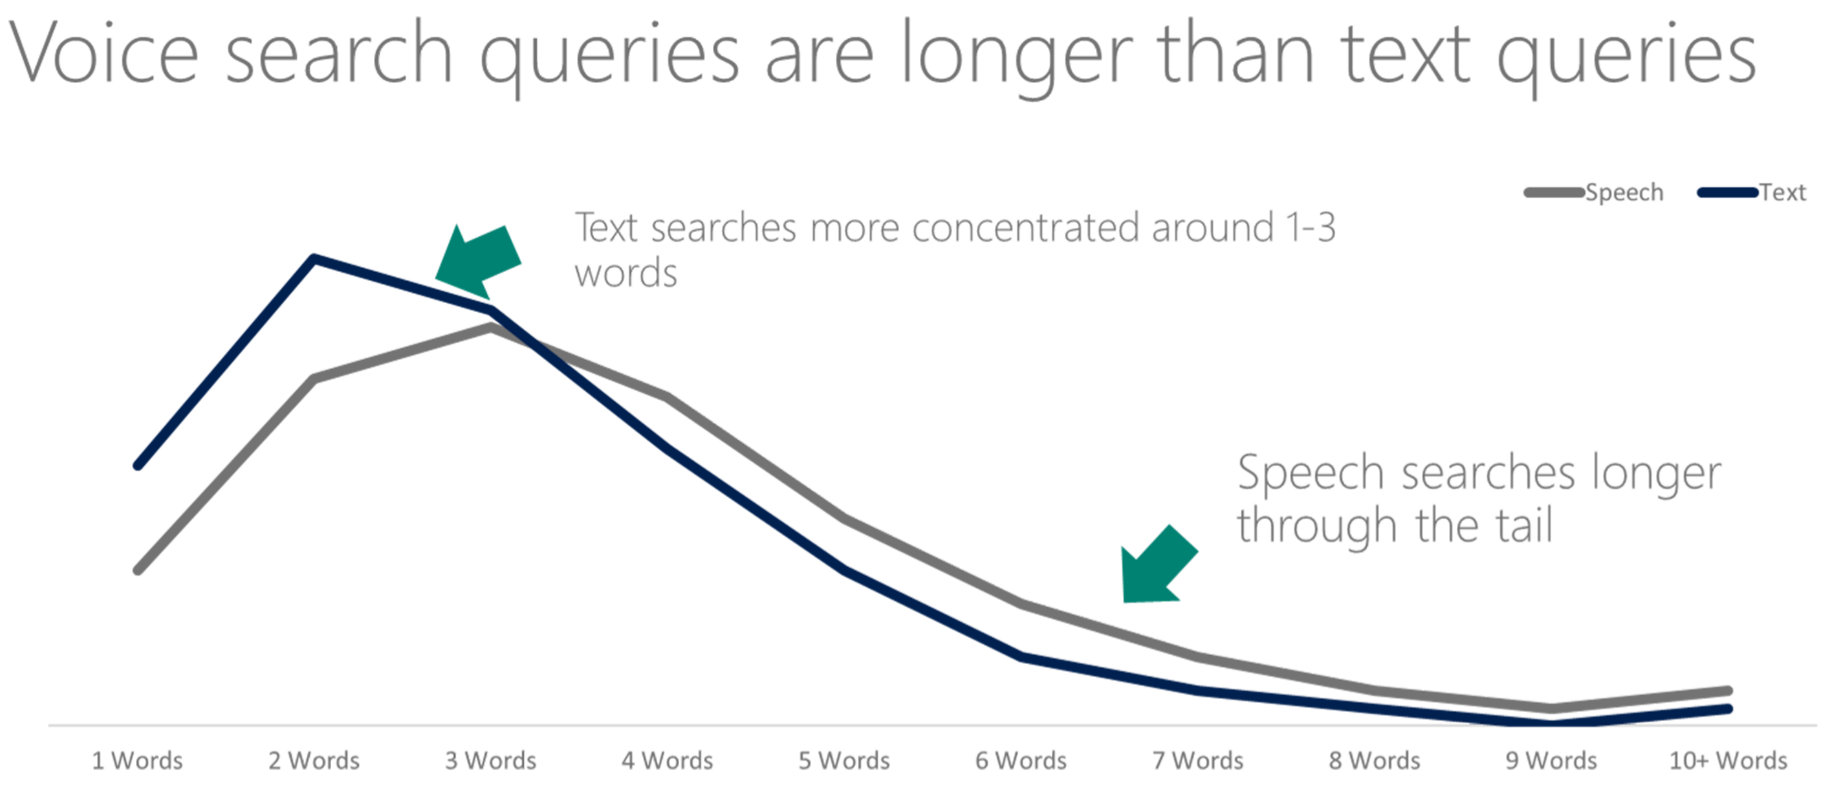 Graph showing that voice searches are longer on average